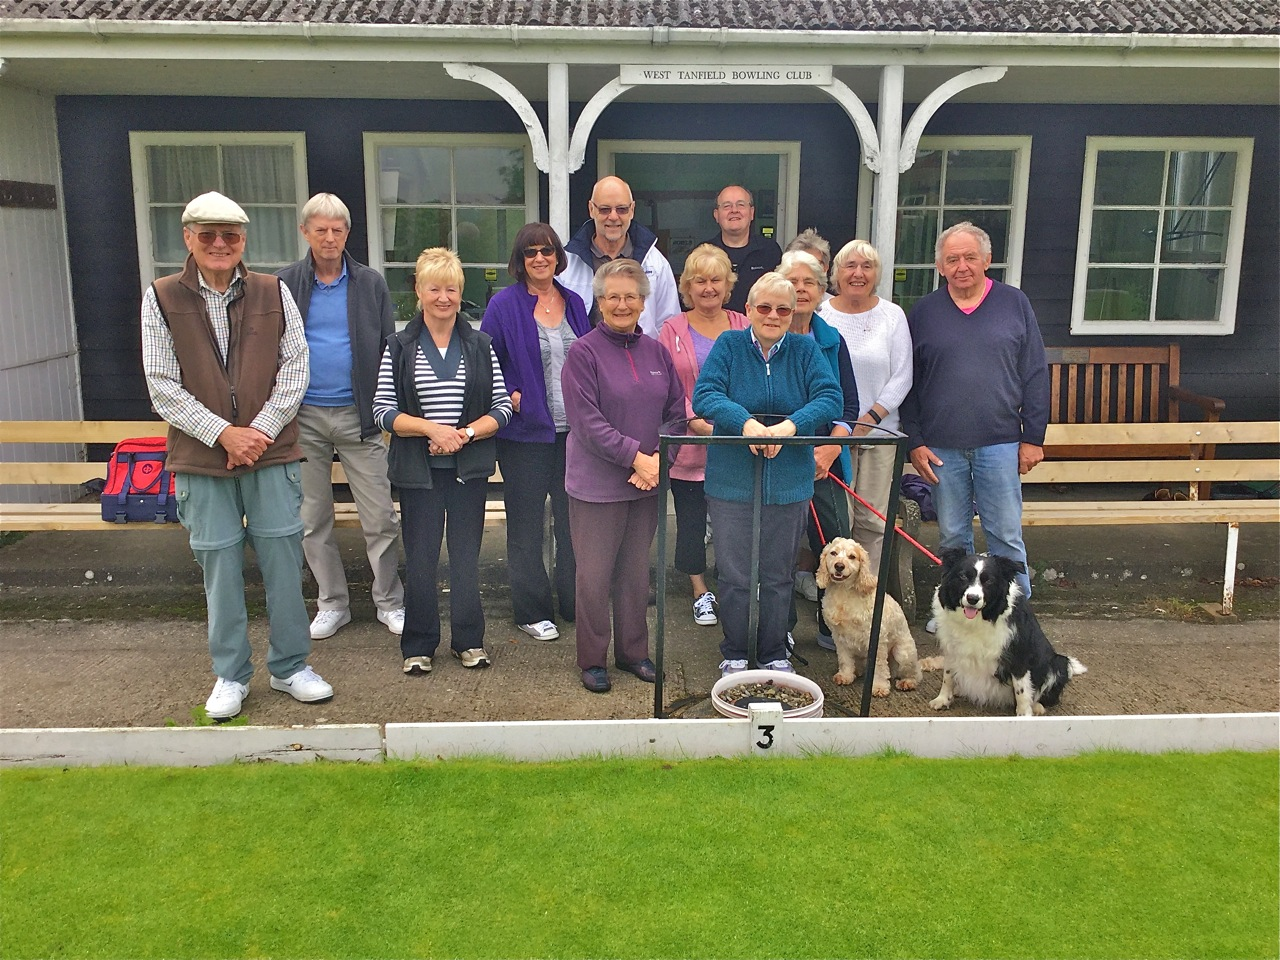 The Lawn Bowling group